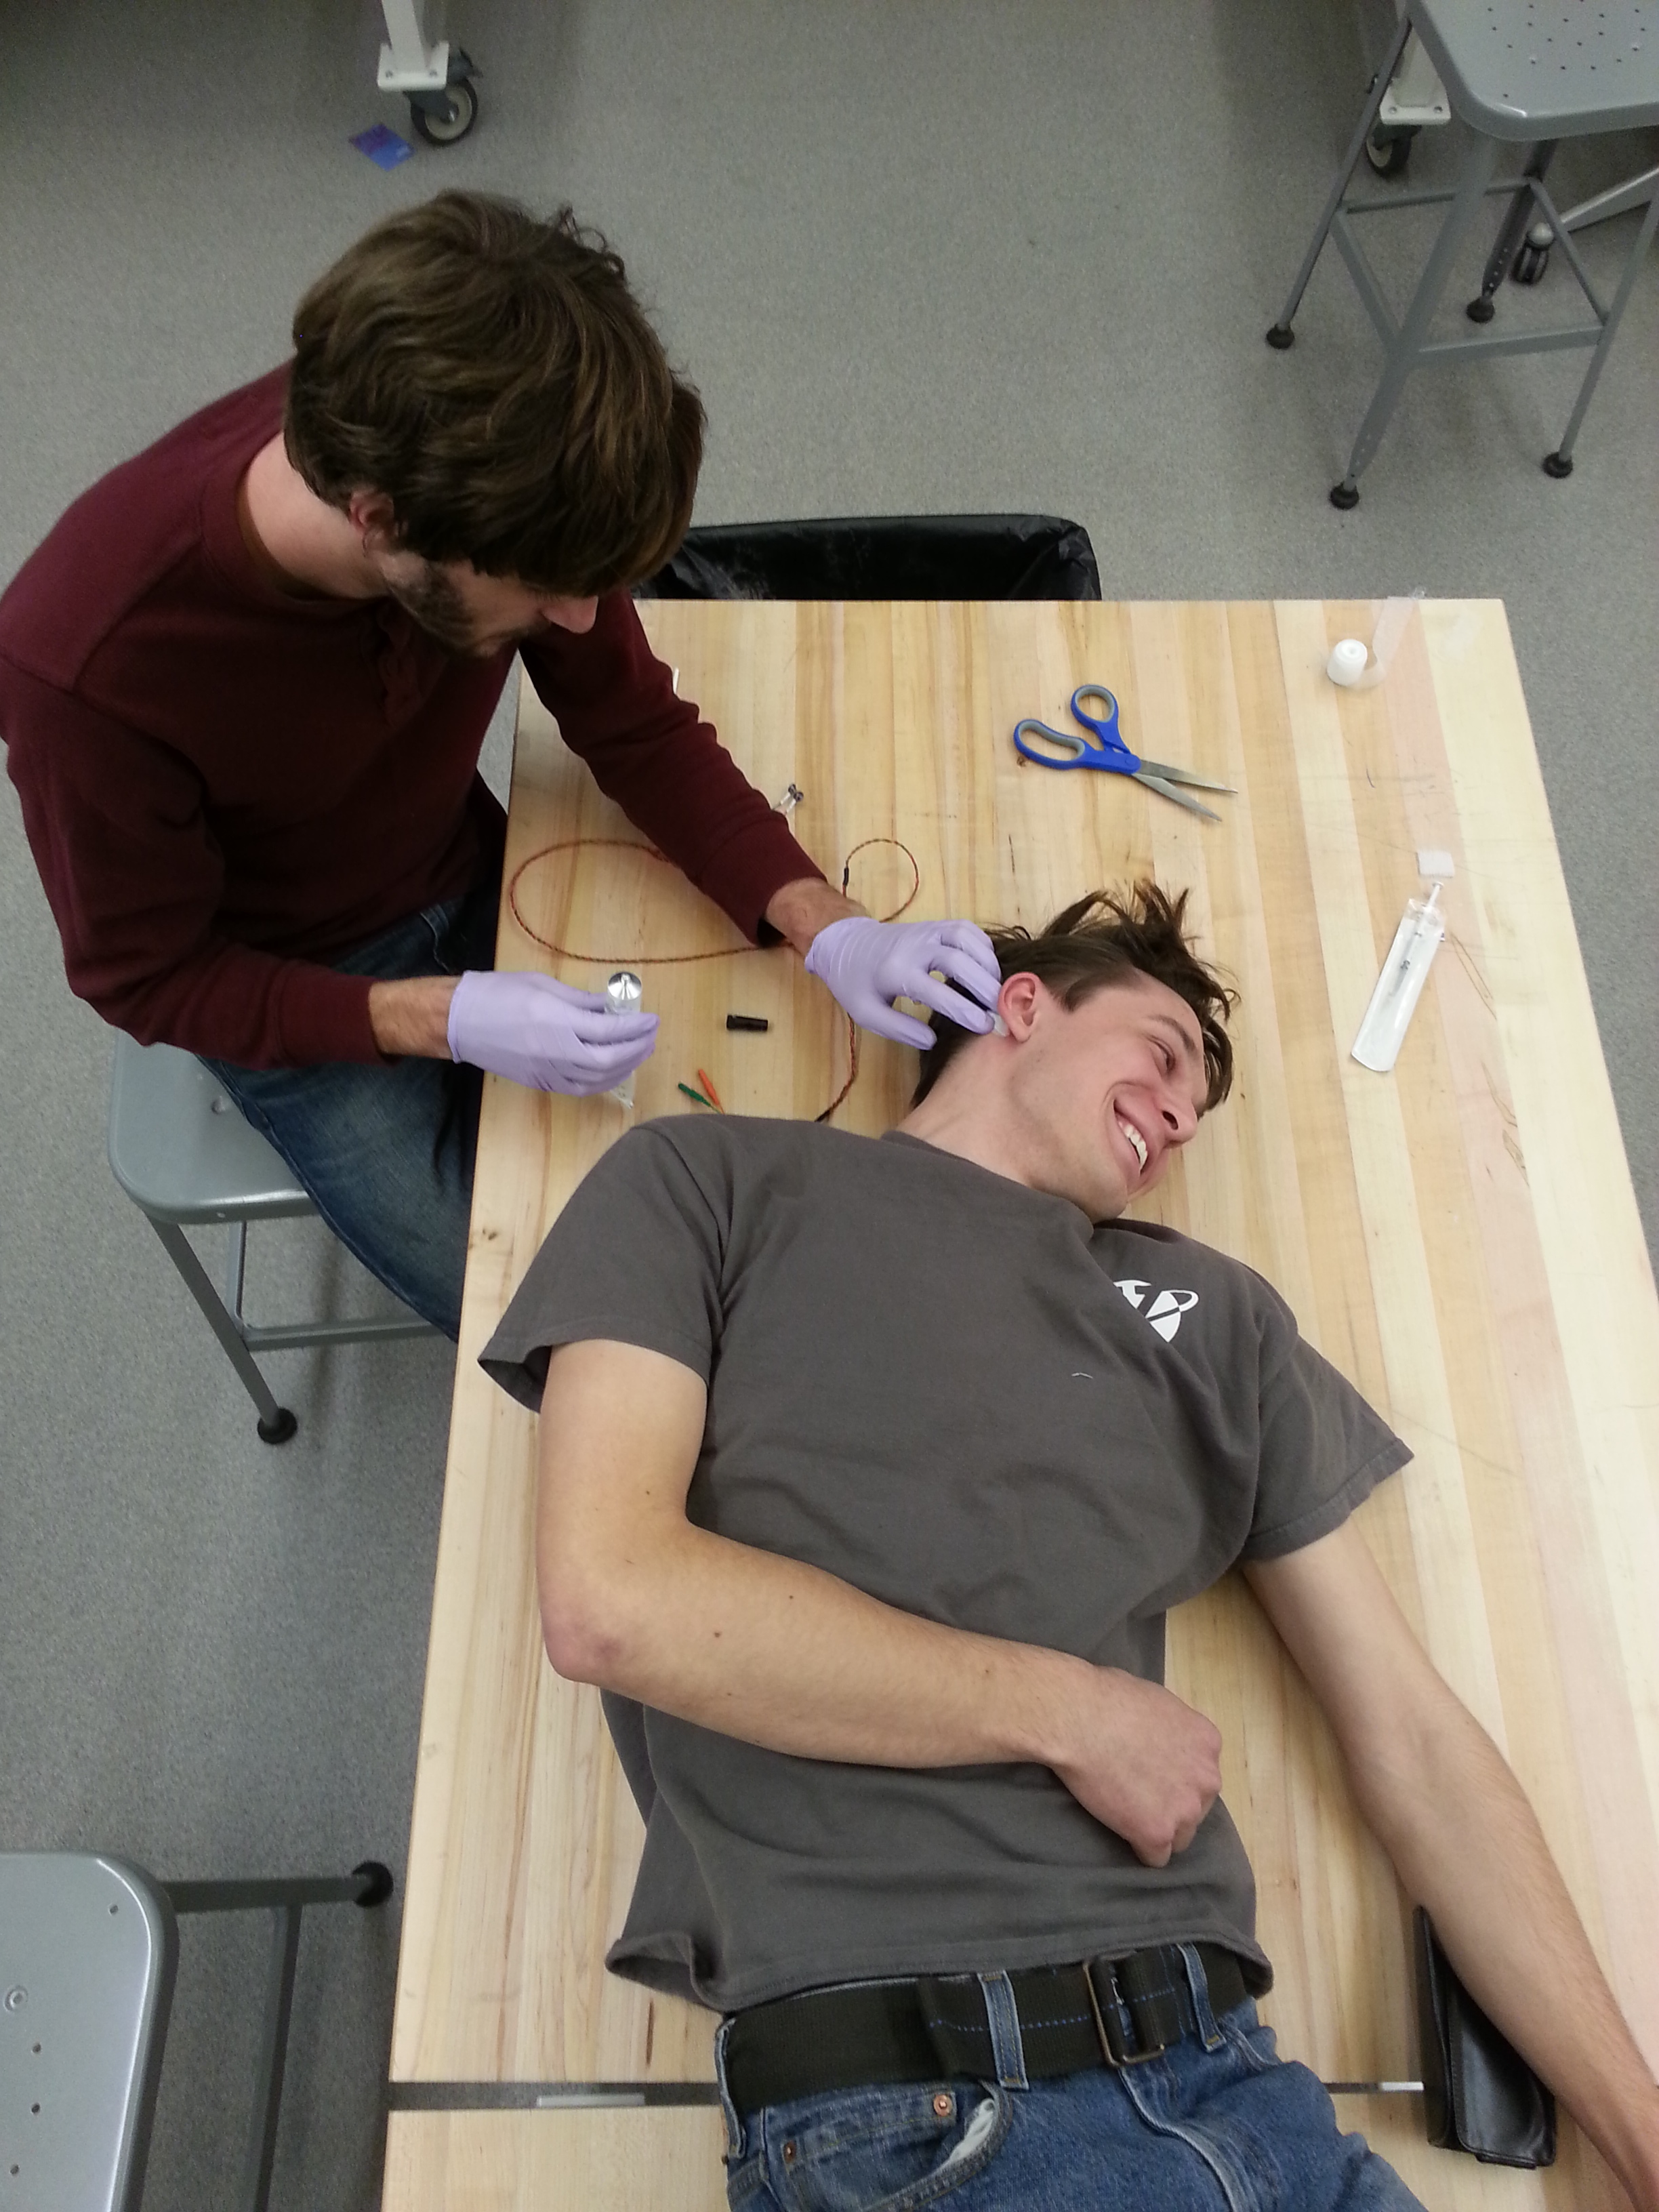 Applying an electrode with glue